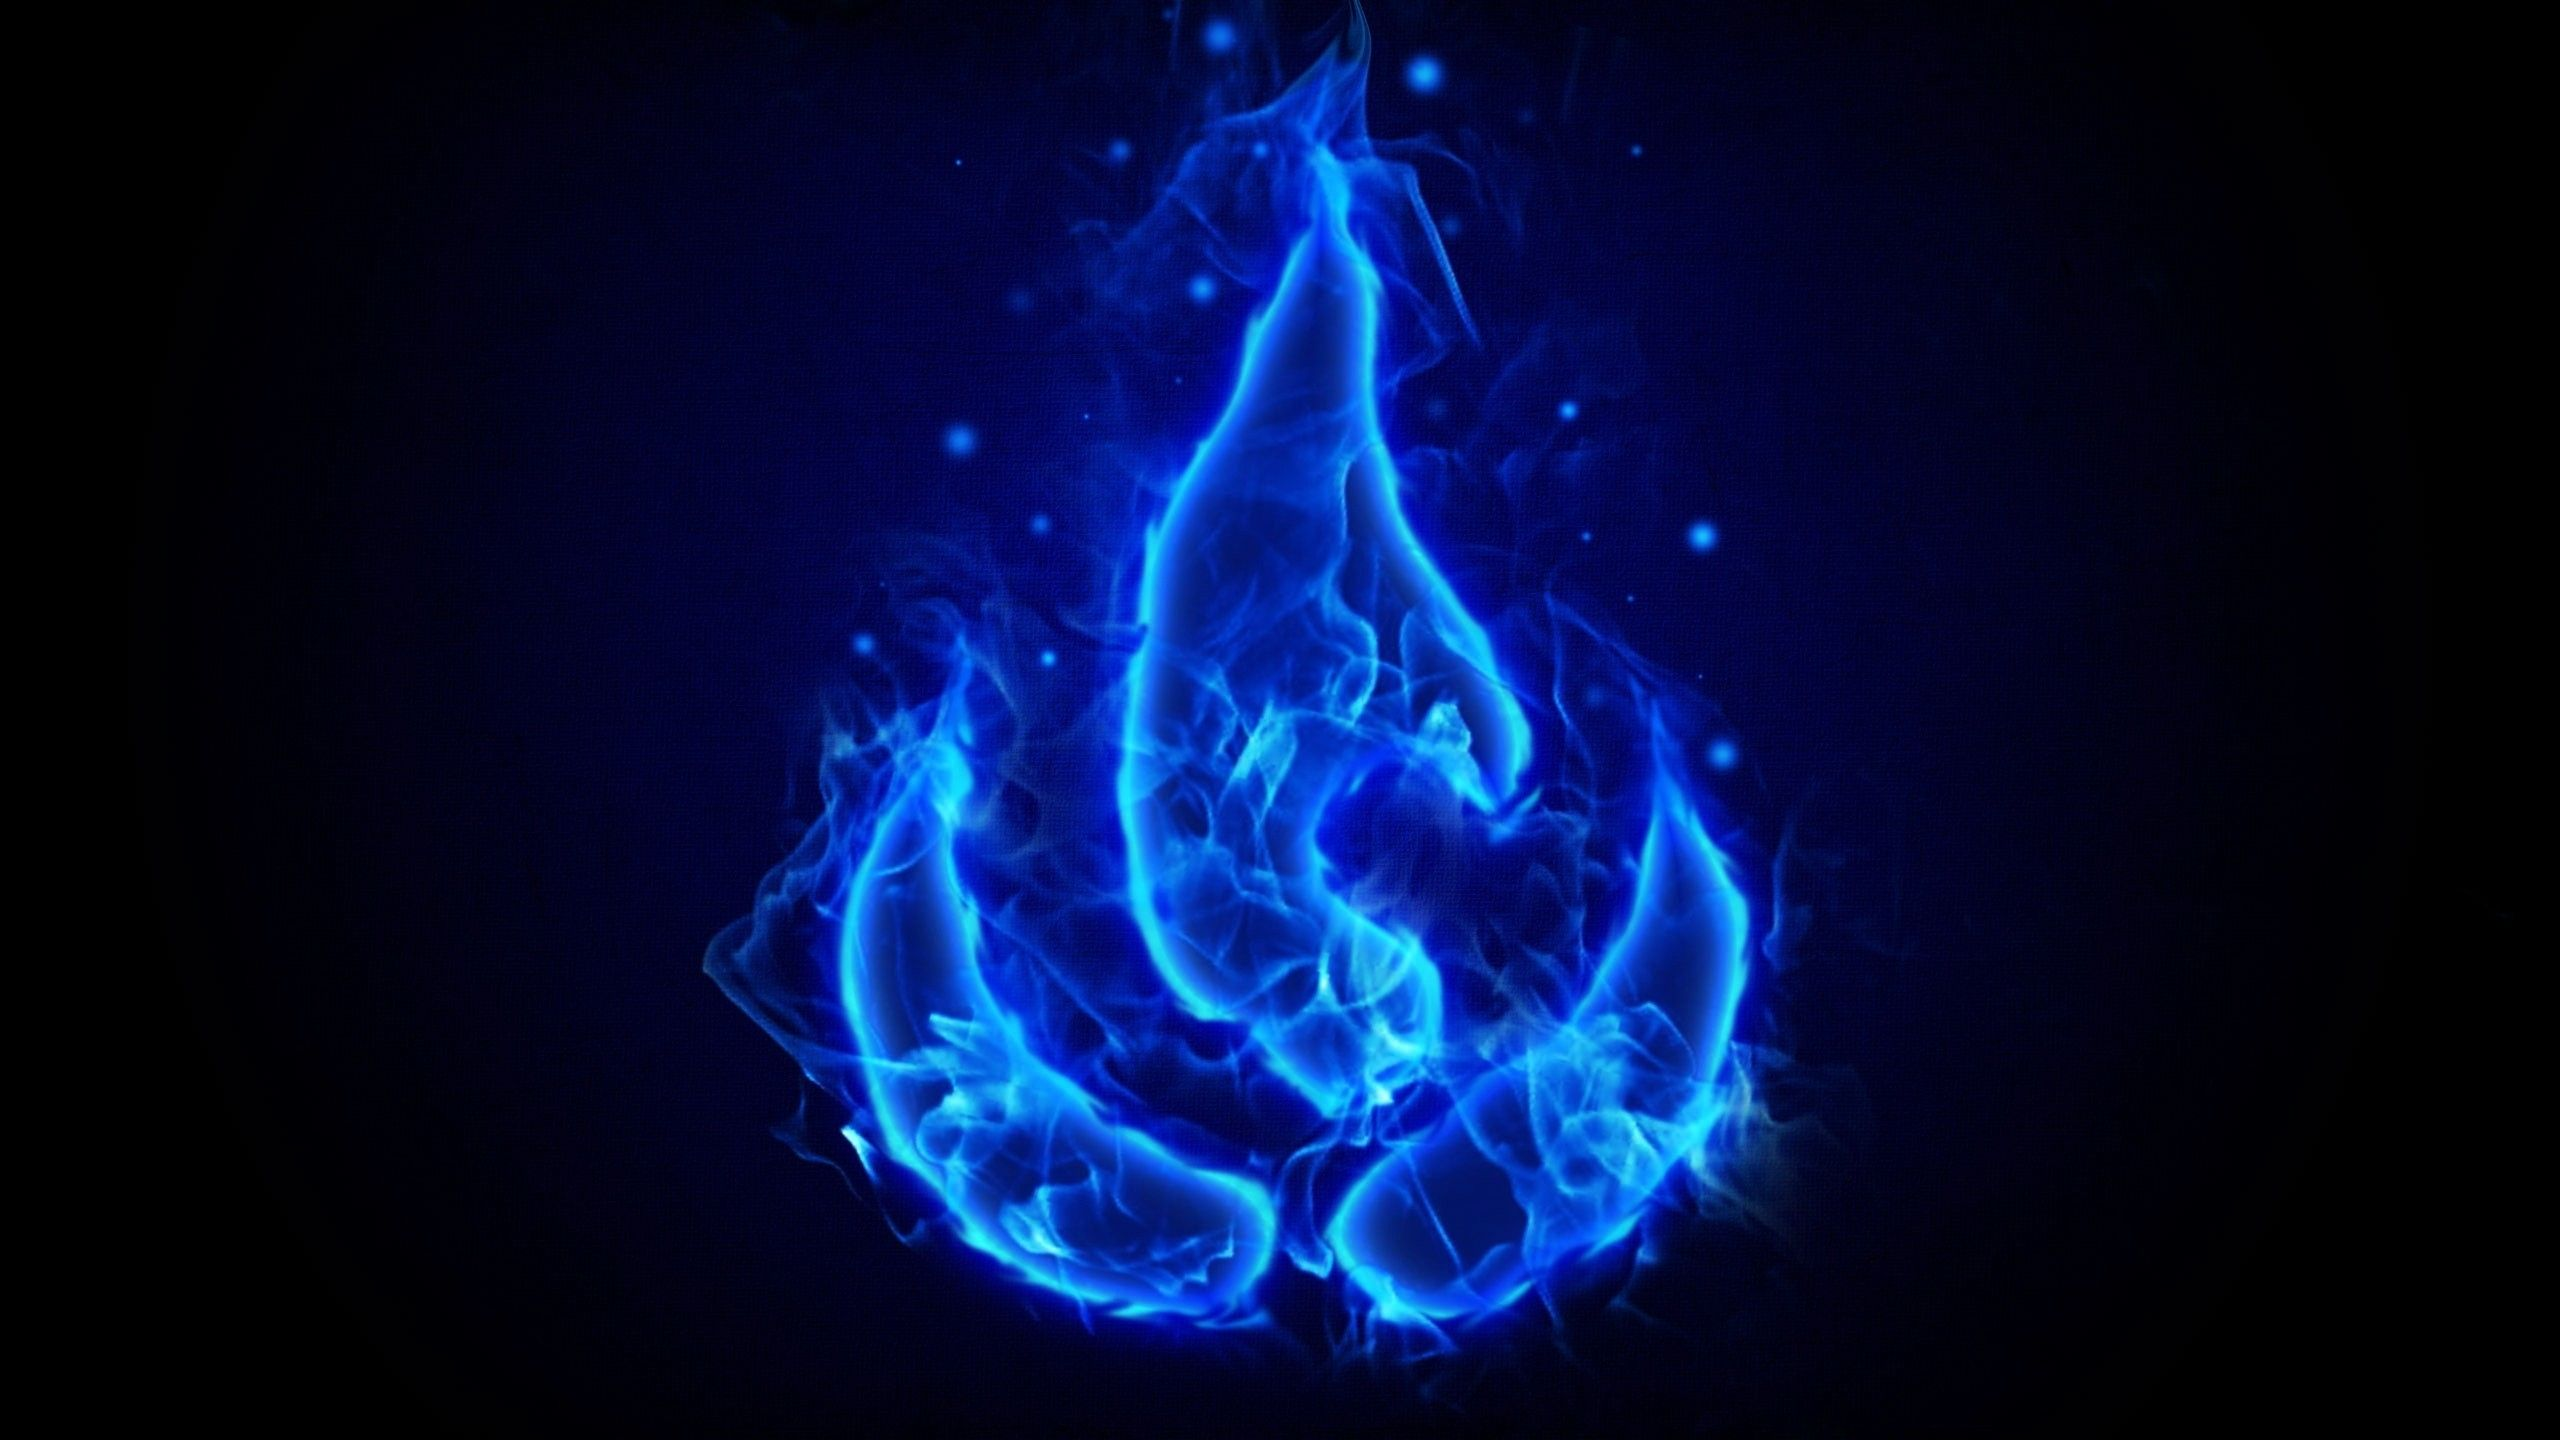 2560x1440 Blue Fire Skull Wallpaper (58+ images)